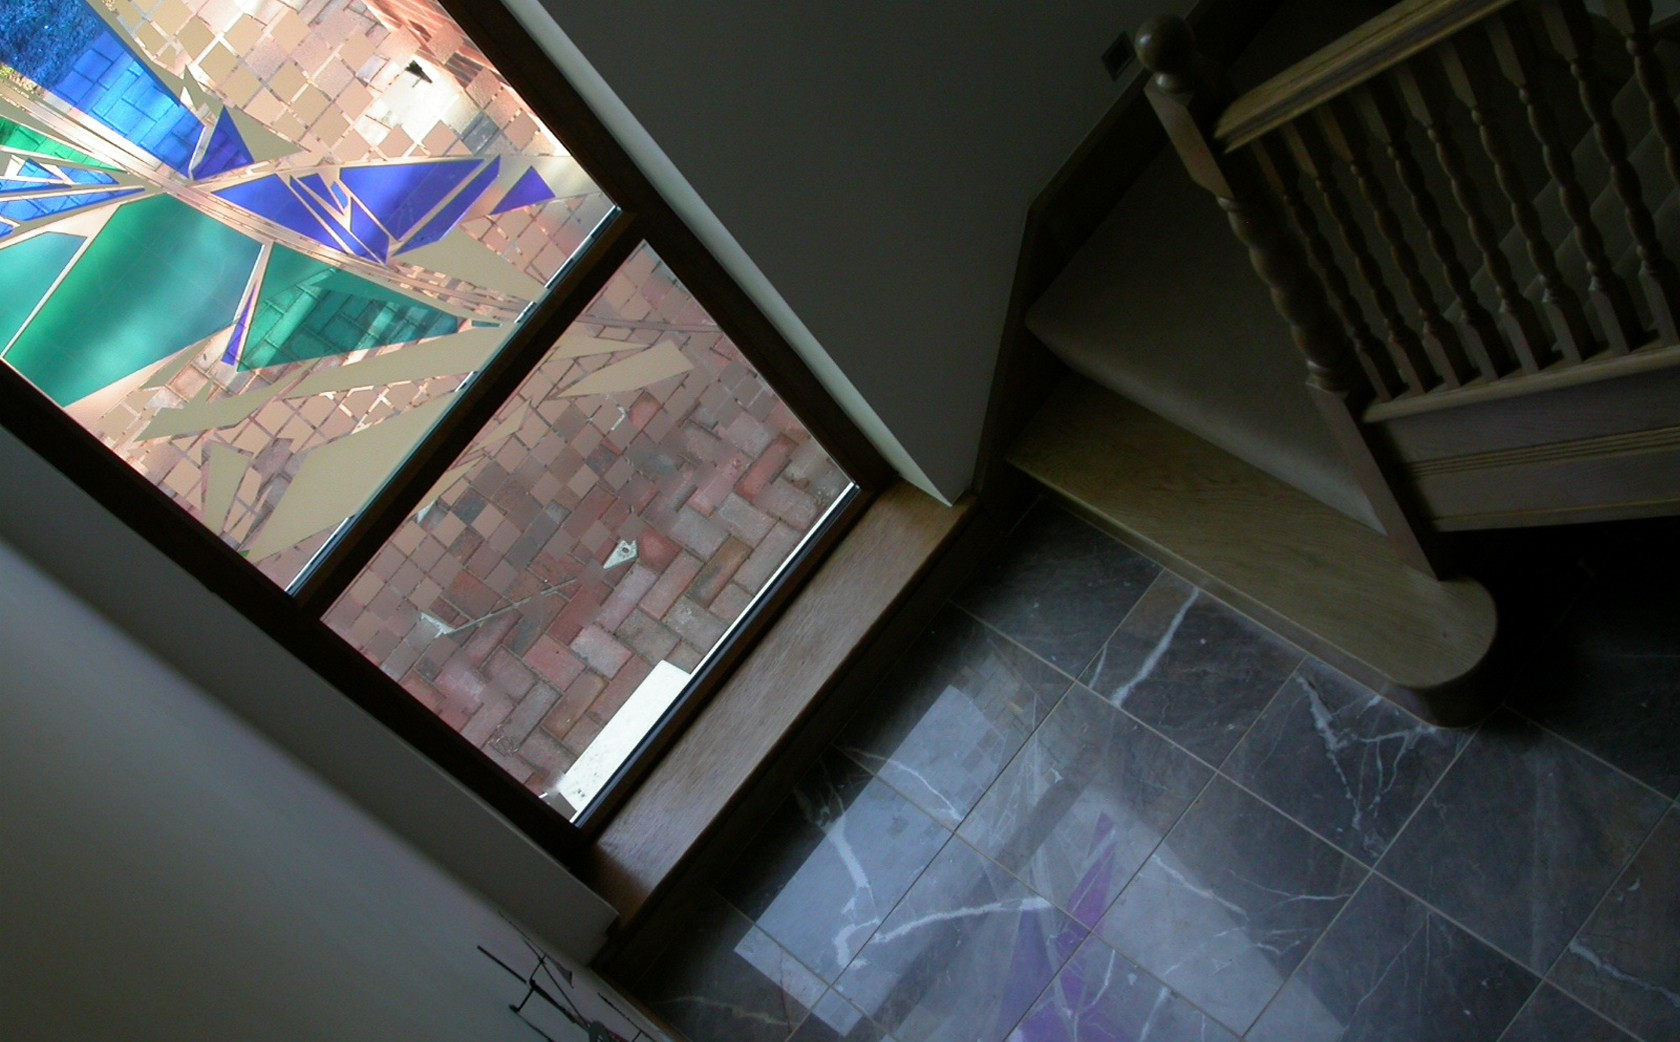 Two-Storey stairway glass art installation. View from upstairs